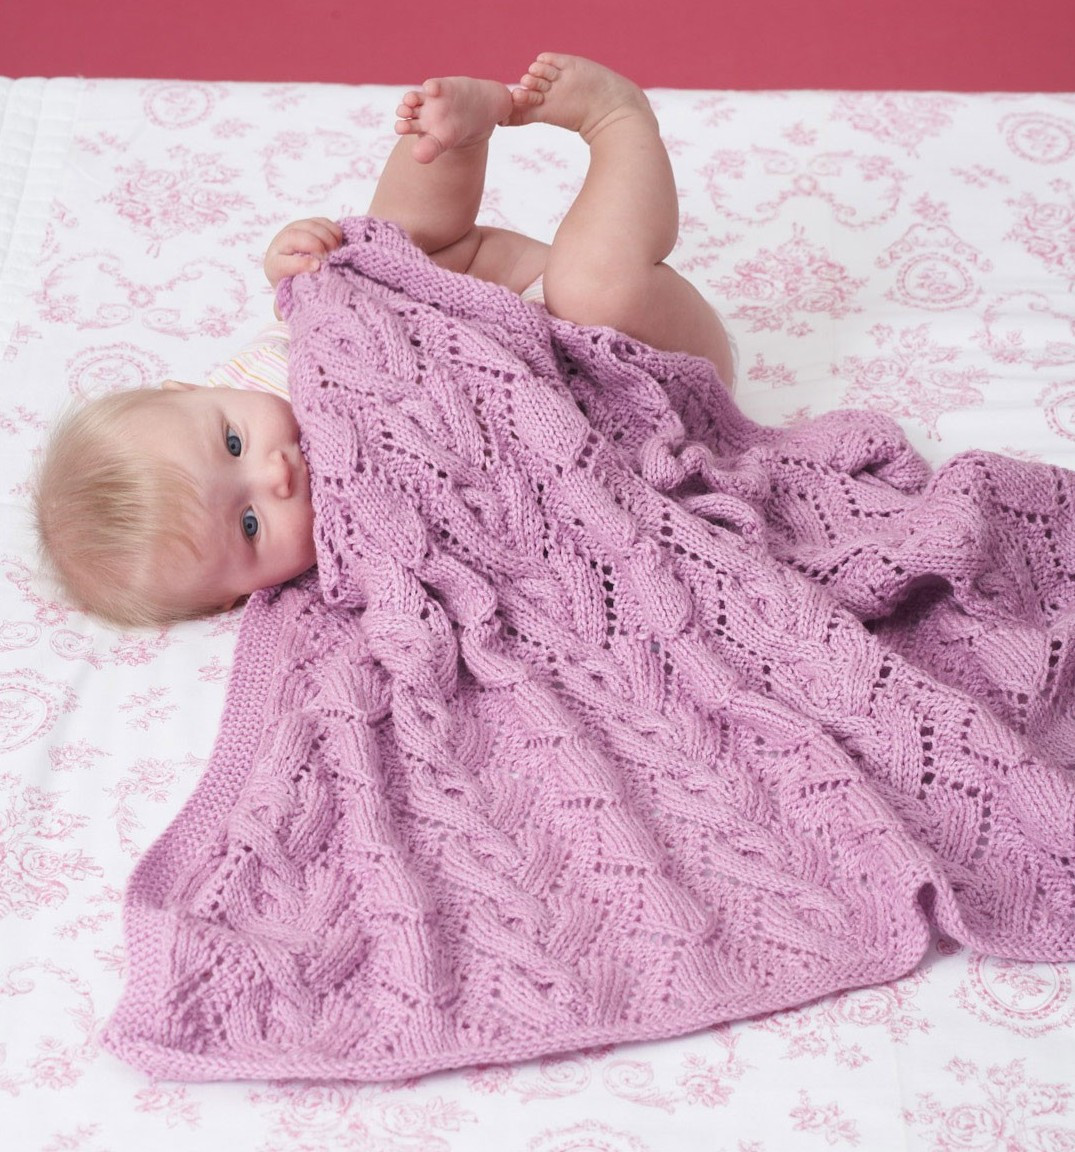 Awesome 15 Cable Knit Baby Blanket Patterns the Funky Stitch Cable Knit Baby Blanket Of Amazing 41 Photos Cable Knit Baby Blanket